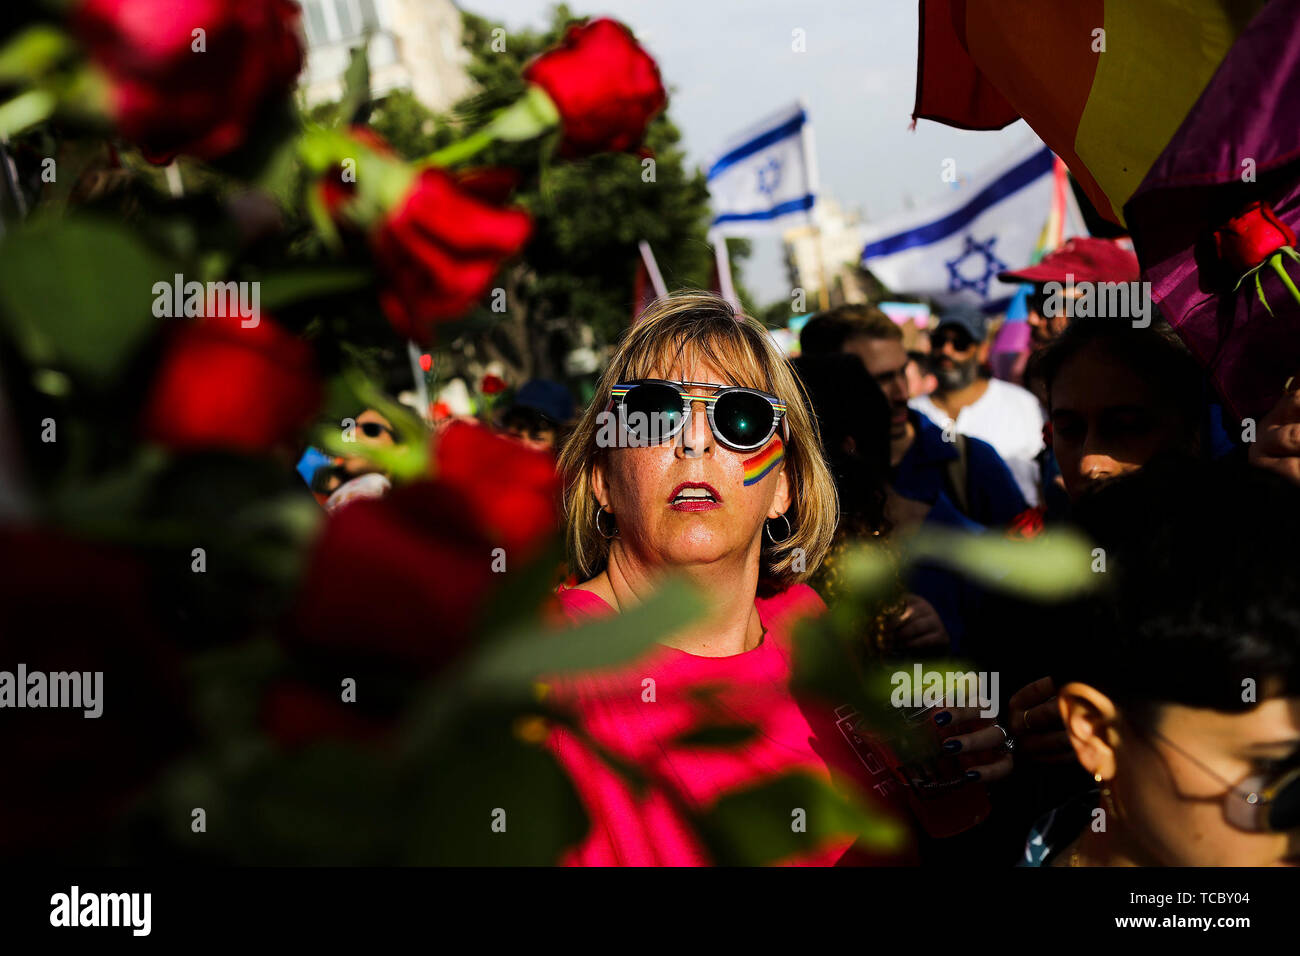 Jerusalem. 06th June, 2019. Participants of Jerusalem's annual Gay Pride Parade, put flowers to commemorate Shira Banki, who was stabbed to death by an ultra-Orthodox Jew during last year's Gay Pride parade. Credit: Ilia Yefimovich/dpa/Alamy Live News - Stock Image